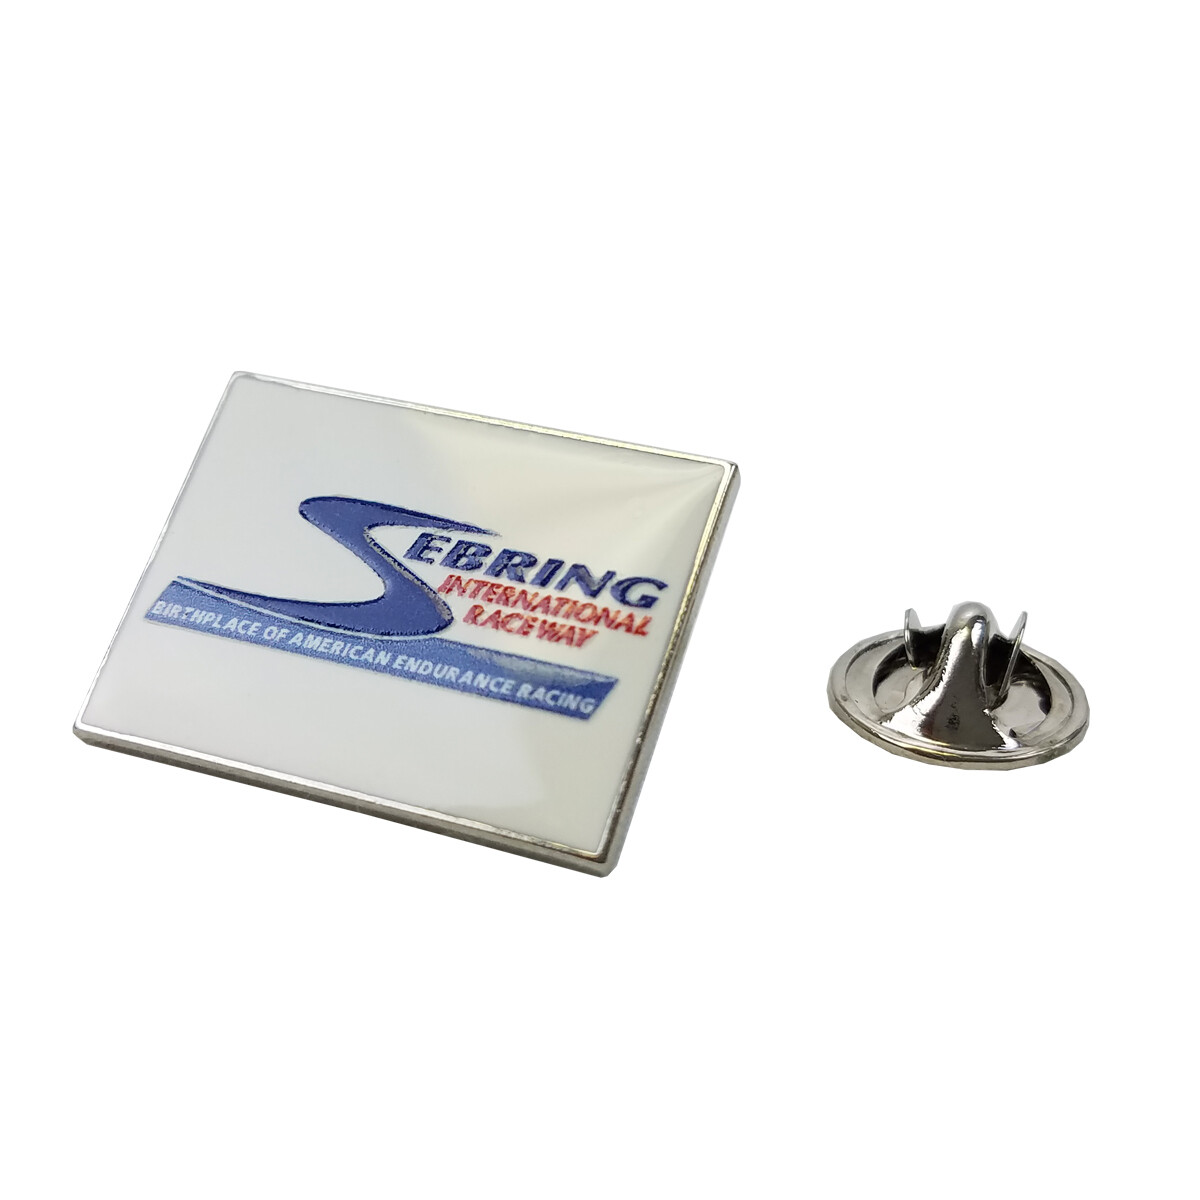 Sebring International Raceway Lapel Pin